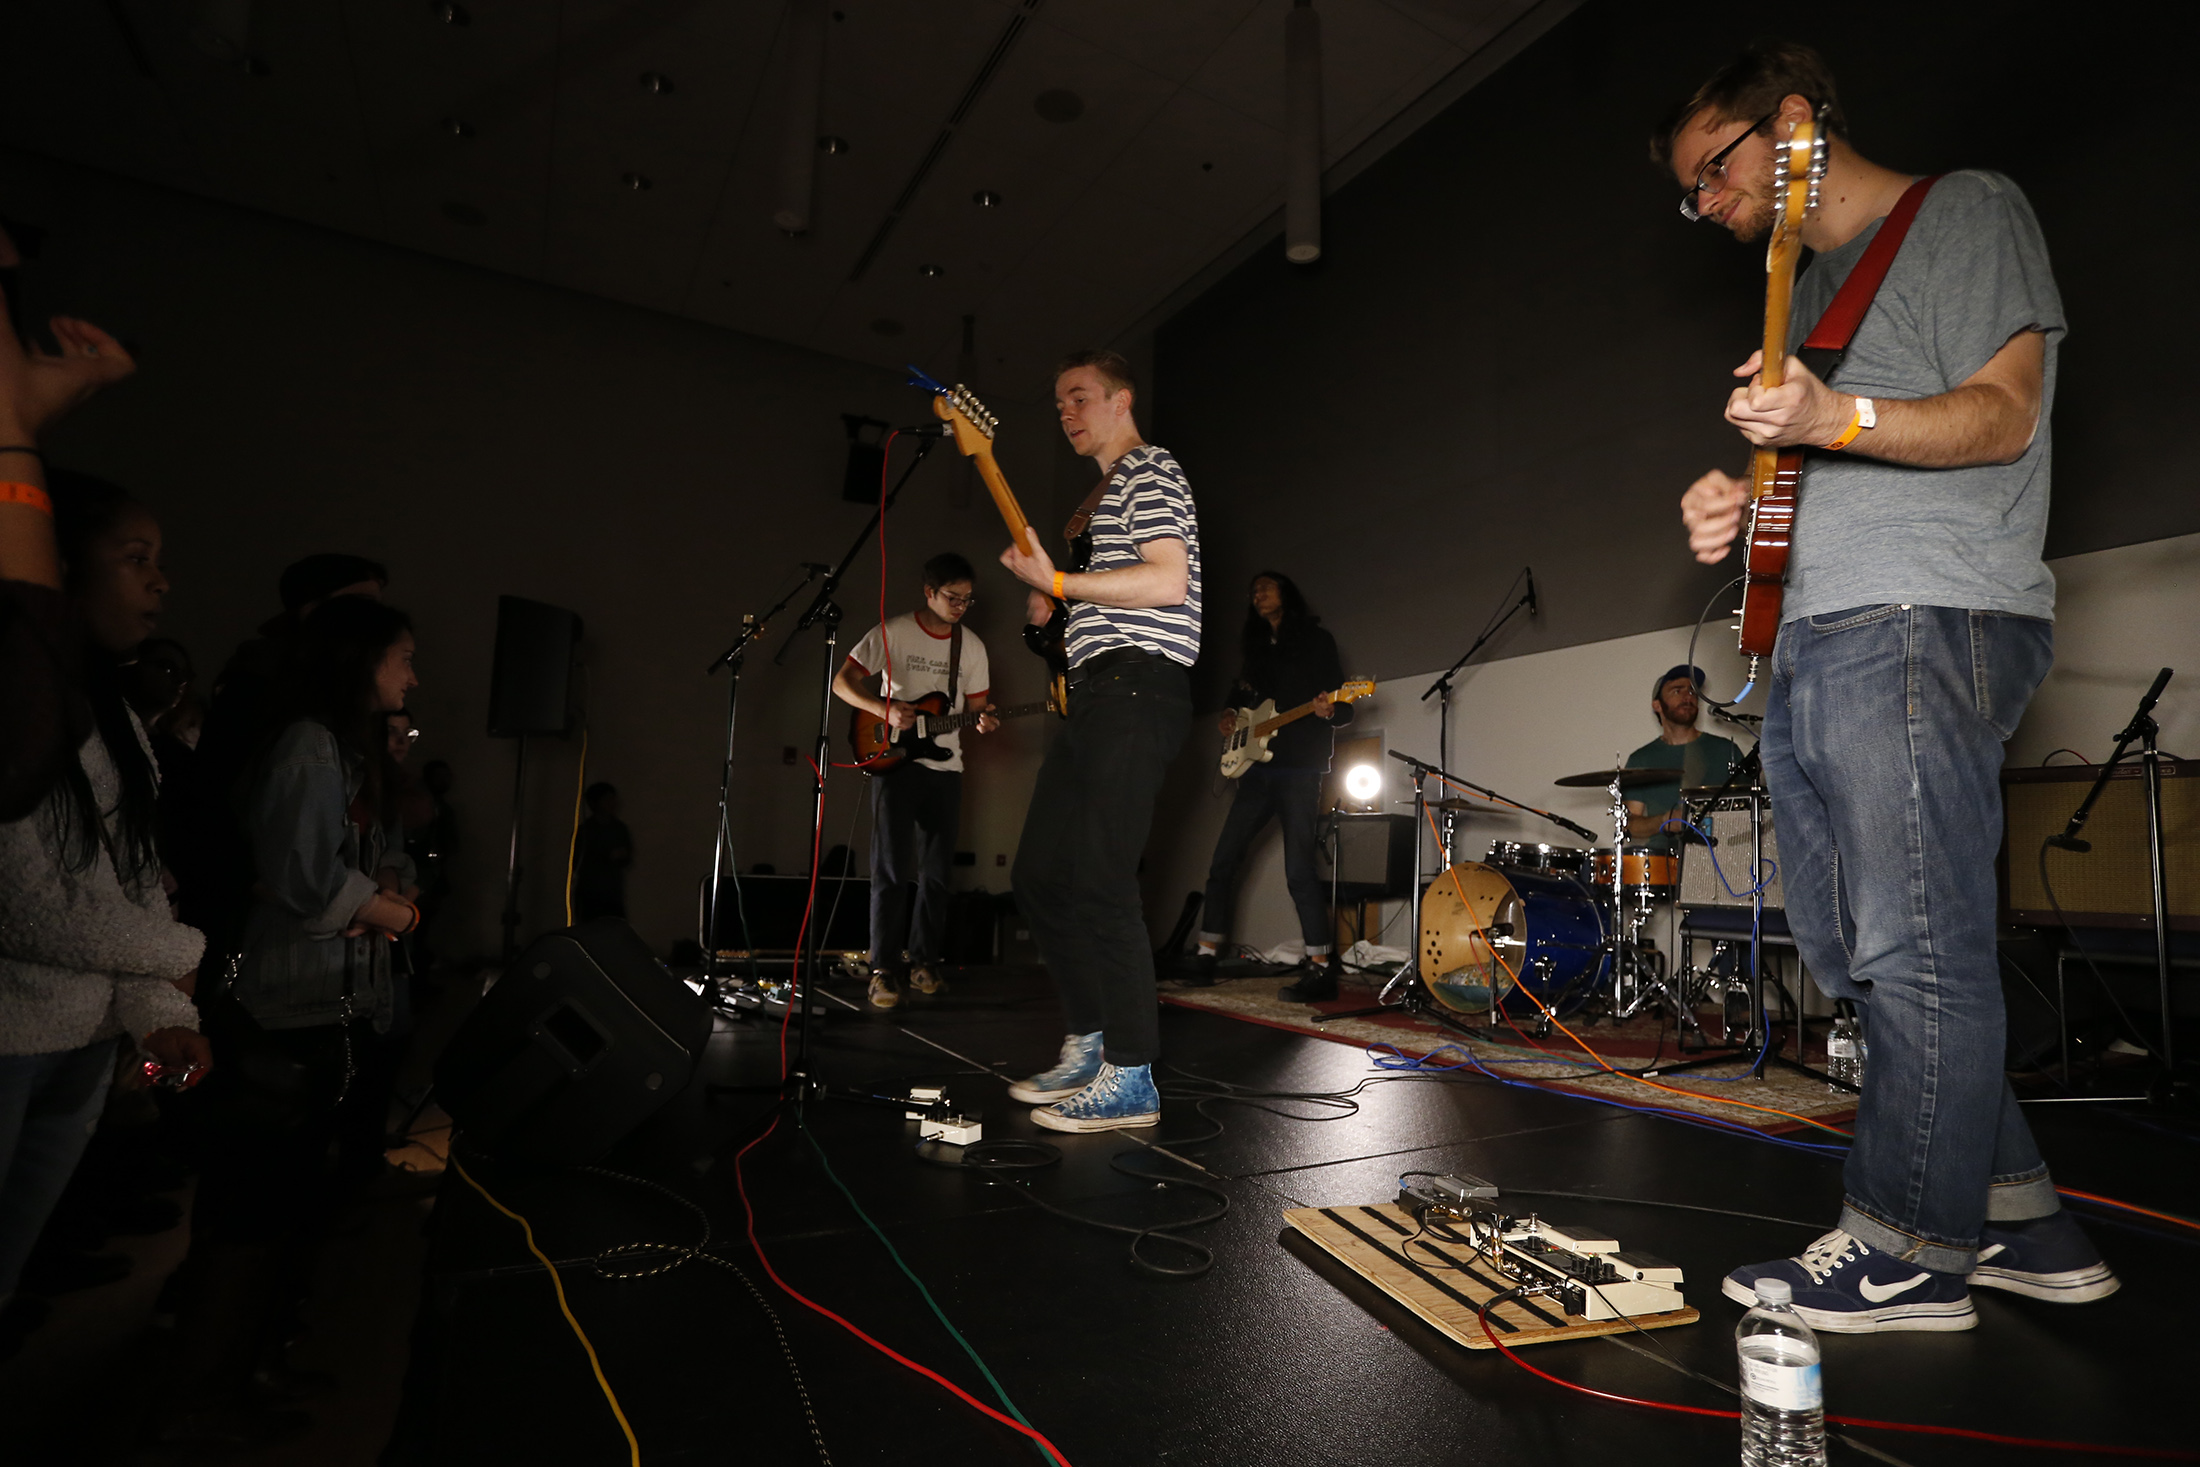 WHUS Radio hosts Mischief After Dark, a concert with many bands including Pine Grove to play in the SU Ballroom. (Tyler Benton/The Daily Campus)